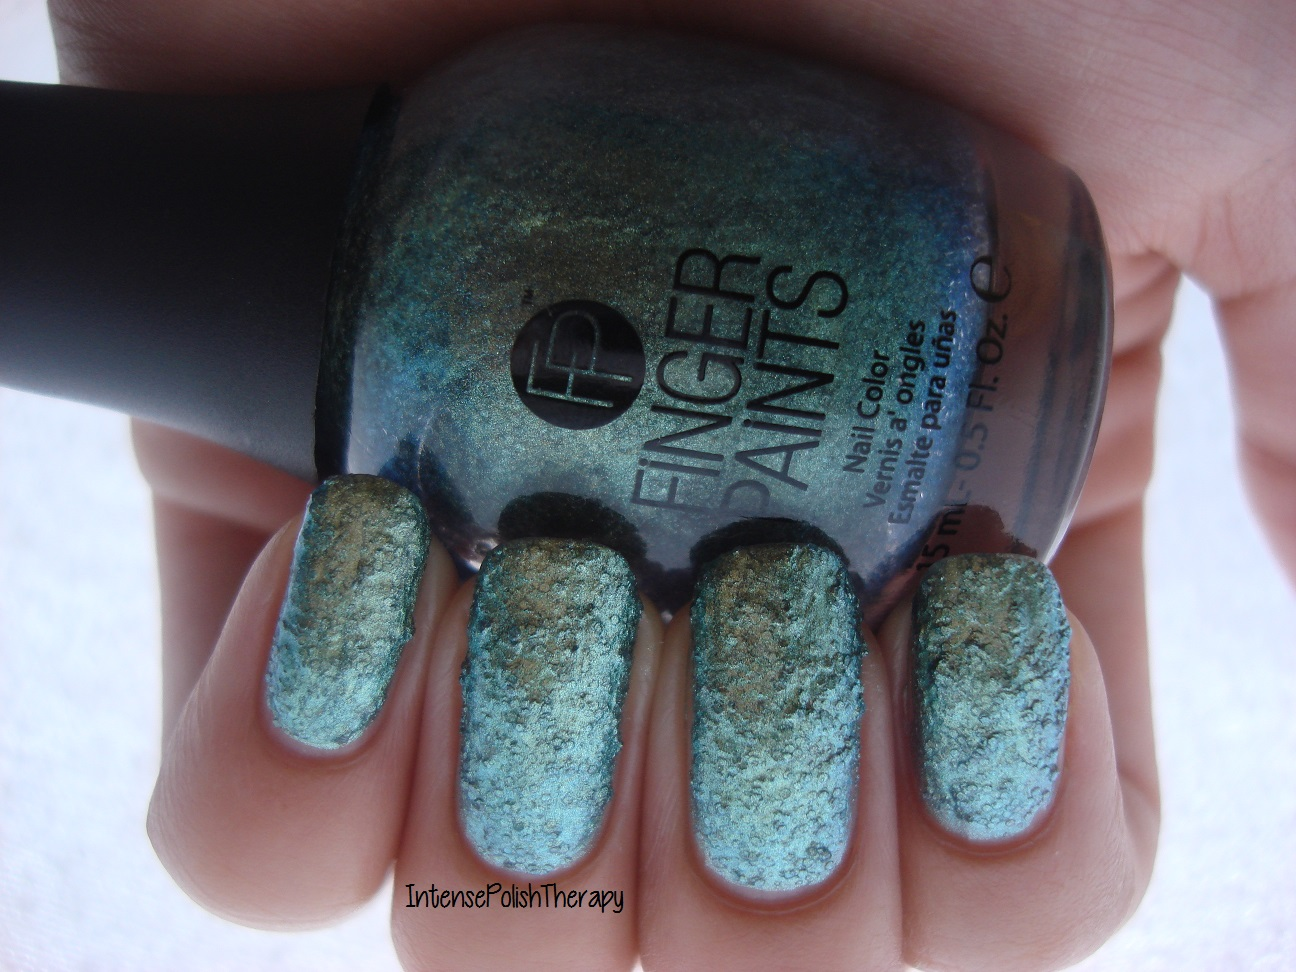 Intense Polish Therapy: Swatch Post # 19